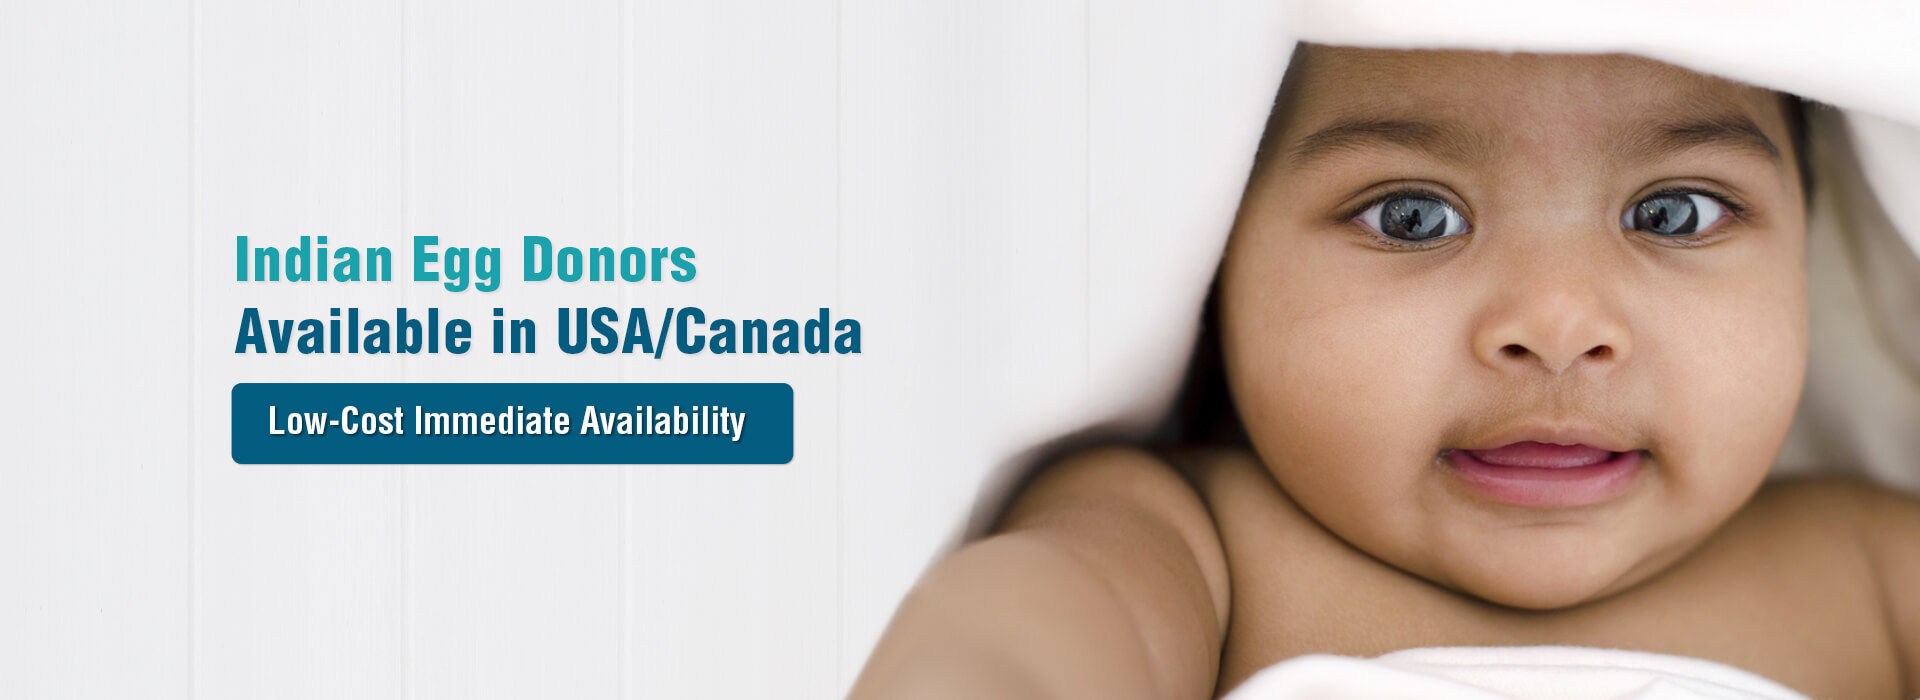 How to find an egg donor online in USA?